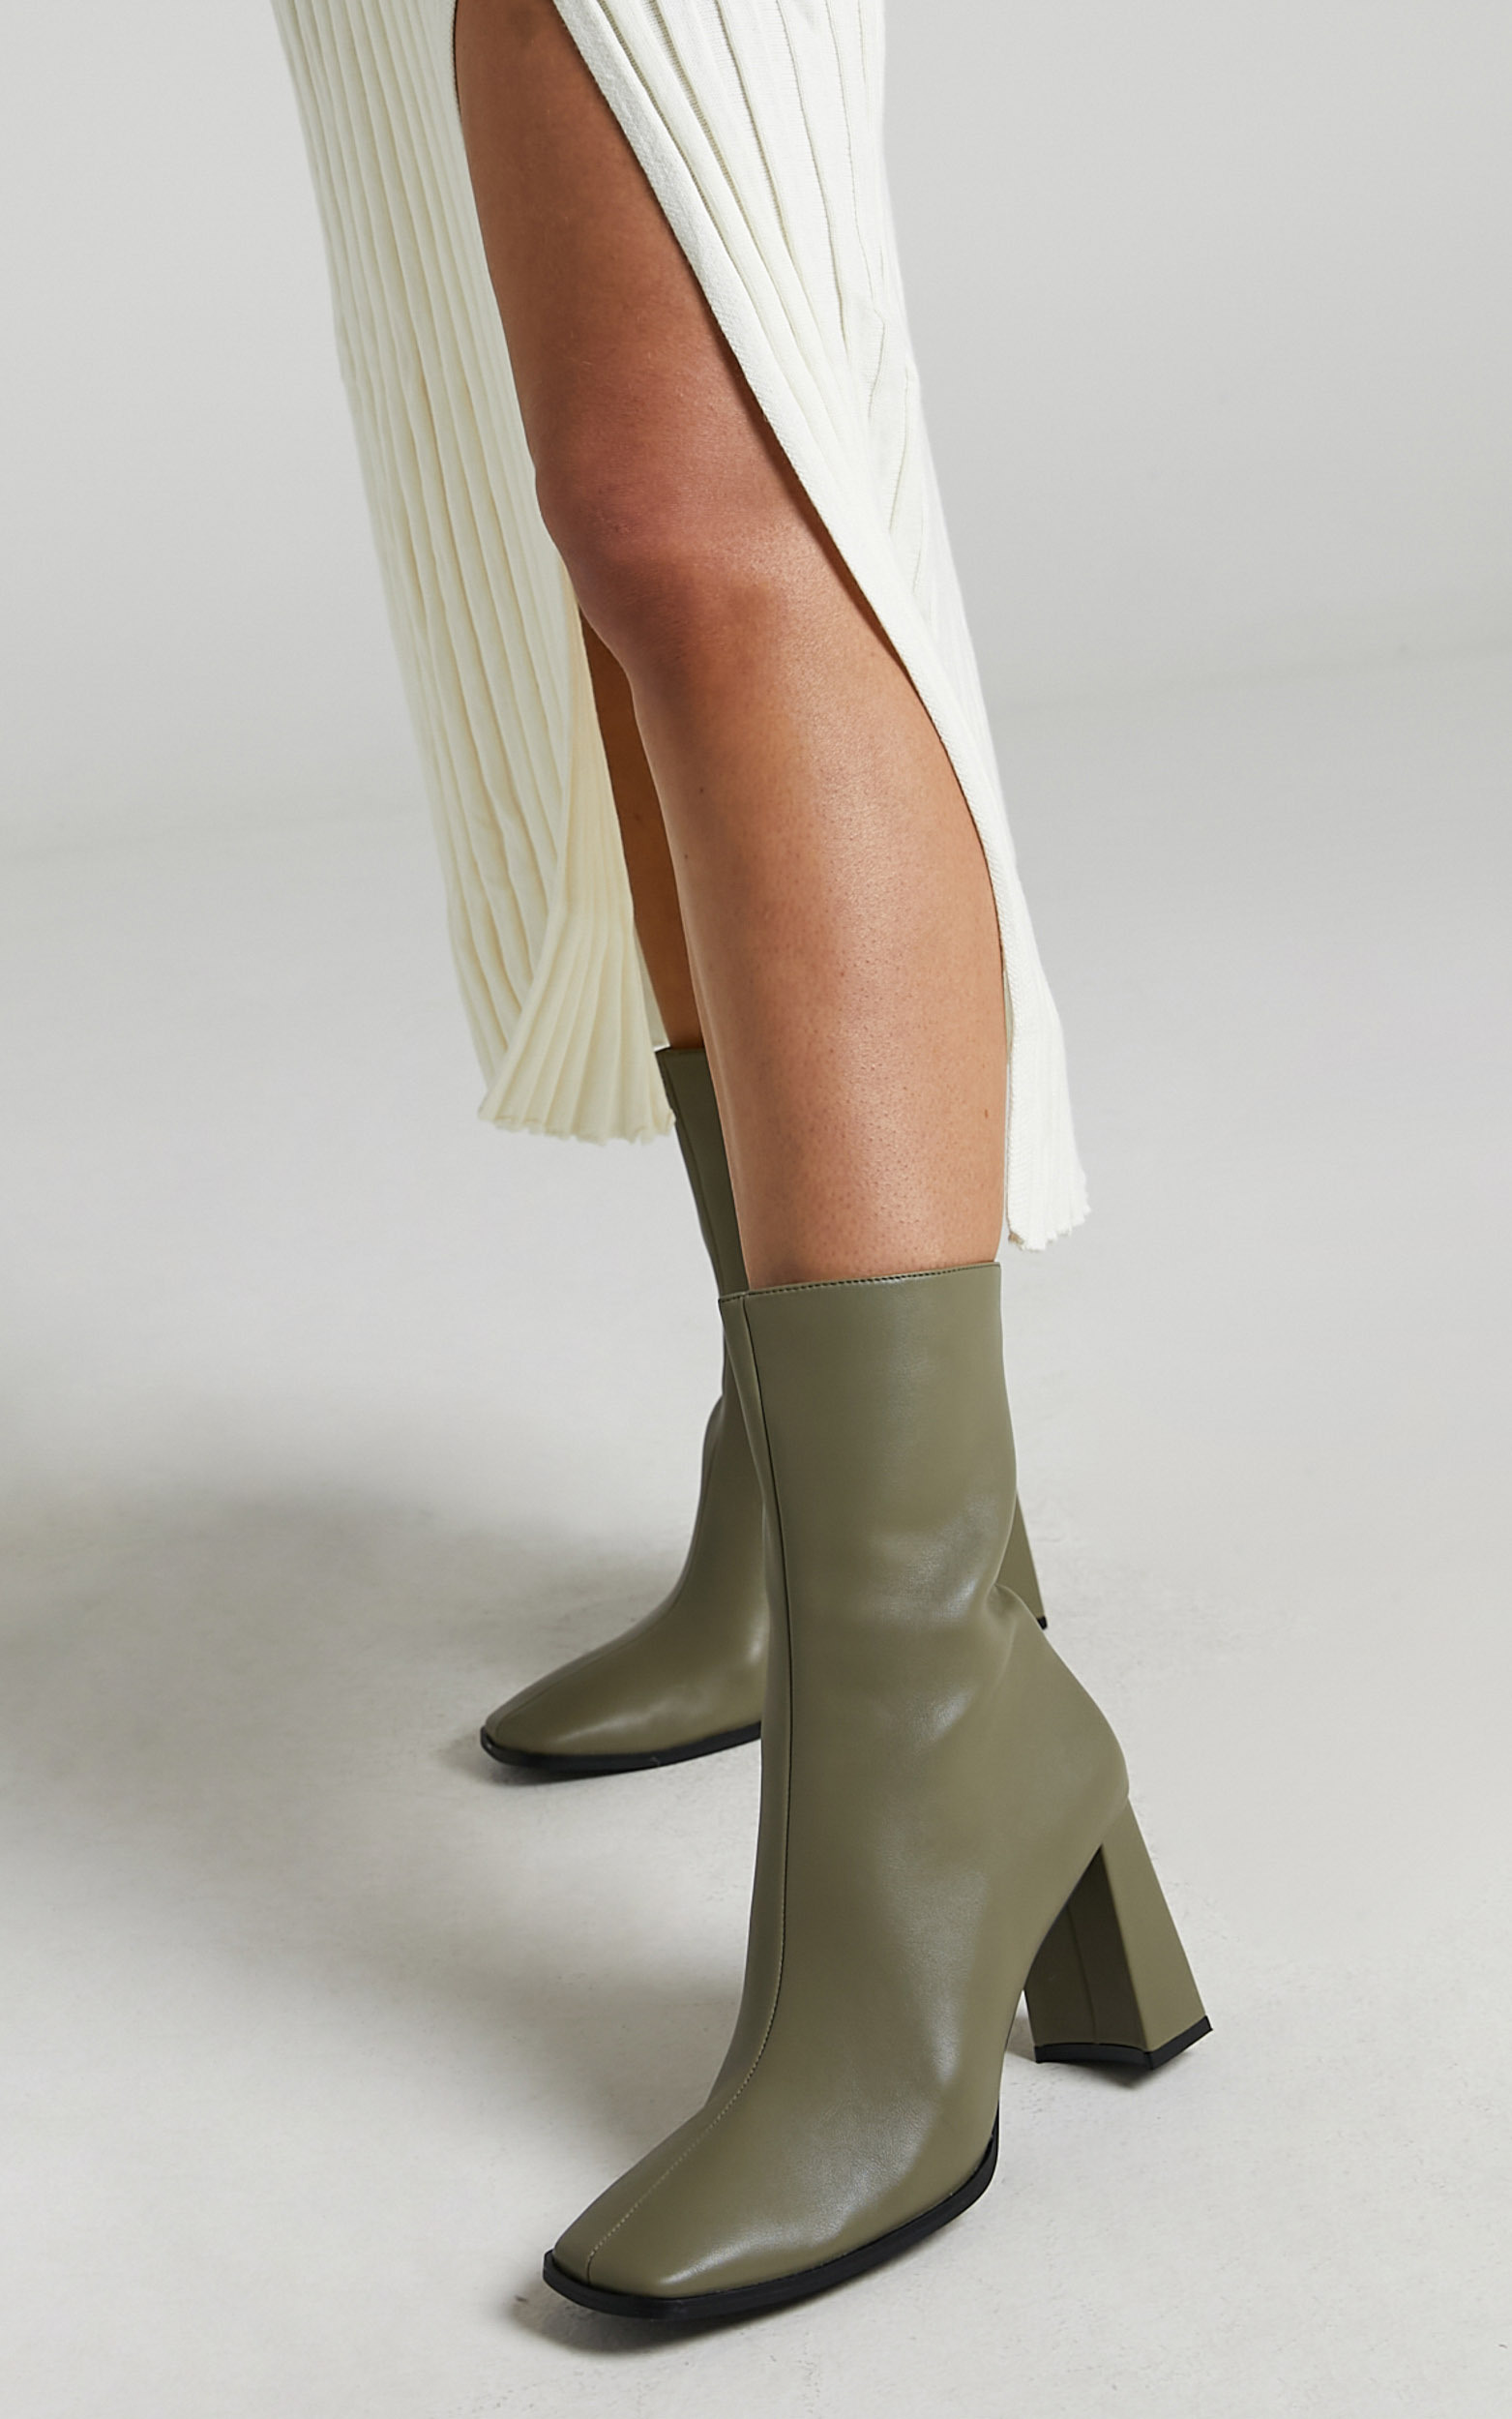 Billini - Orleans Boots in Army - 05, GRN2, hi-res image number null